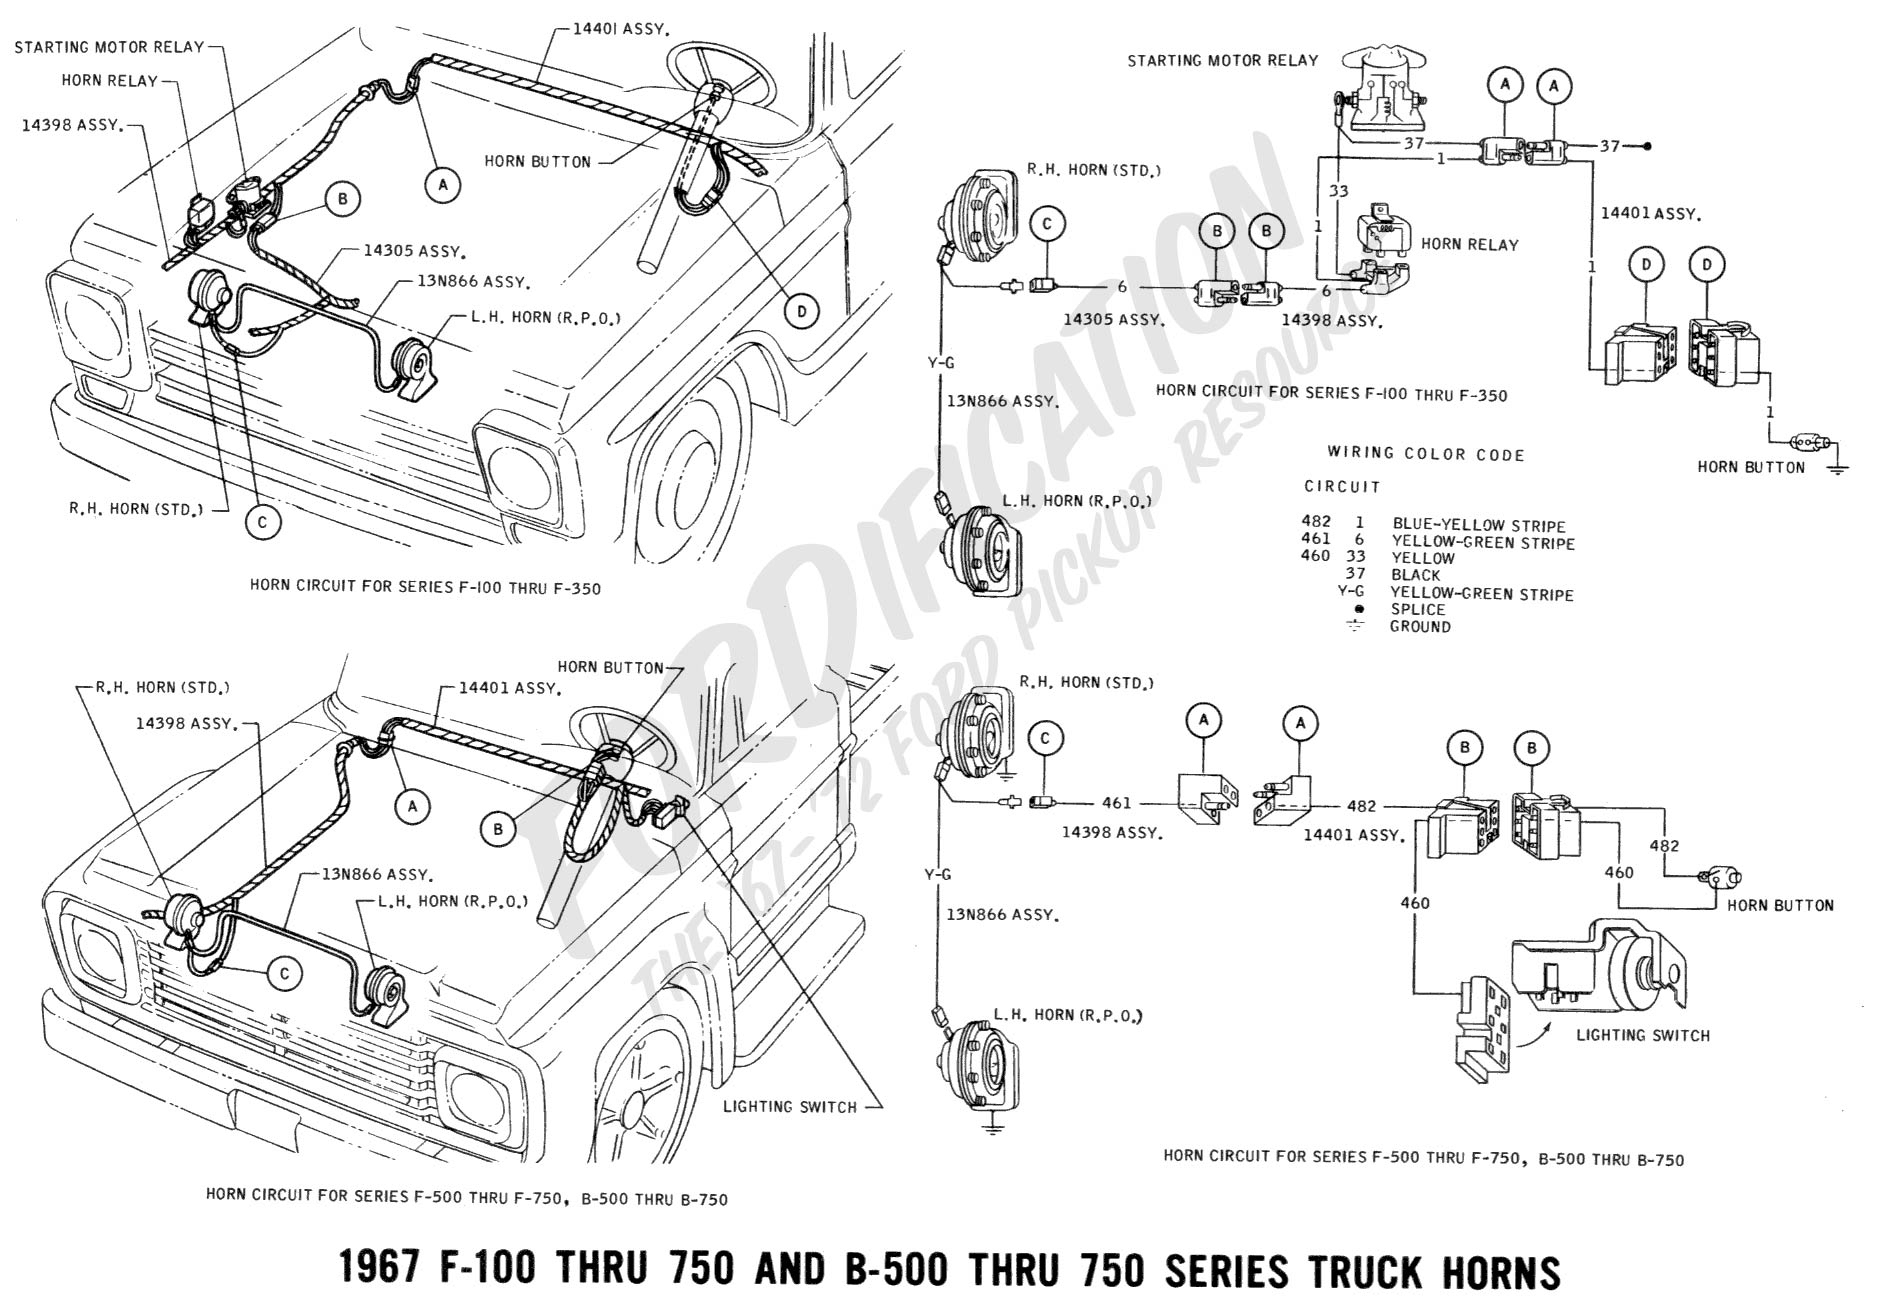 1967 F100 Wiring Diagrams - Wiring Diagrams - Chevy 350 Ignition Coil Wiring Diagram